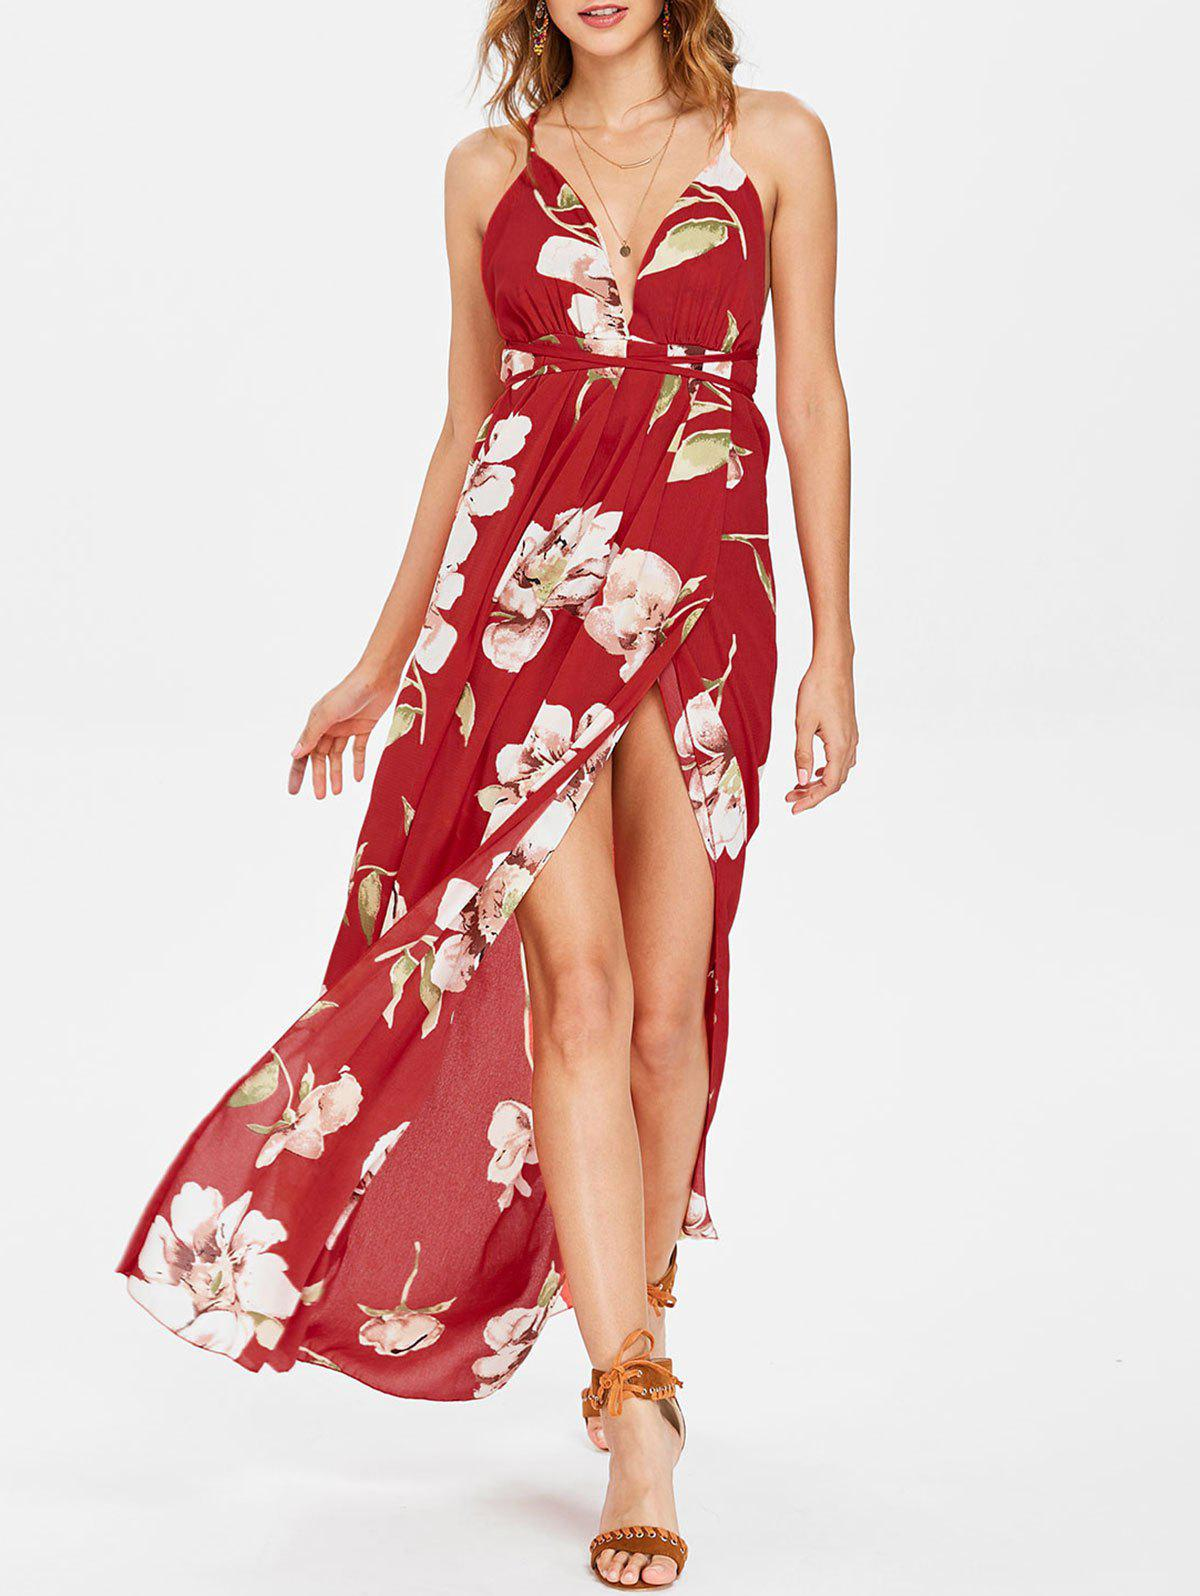 Flower Printed Low Cut Maxi Dress шелкопряд гэлбрейт р